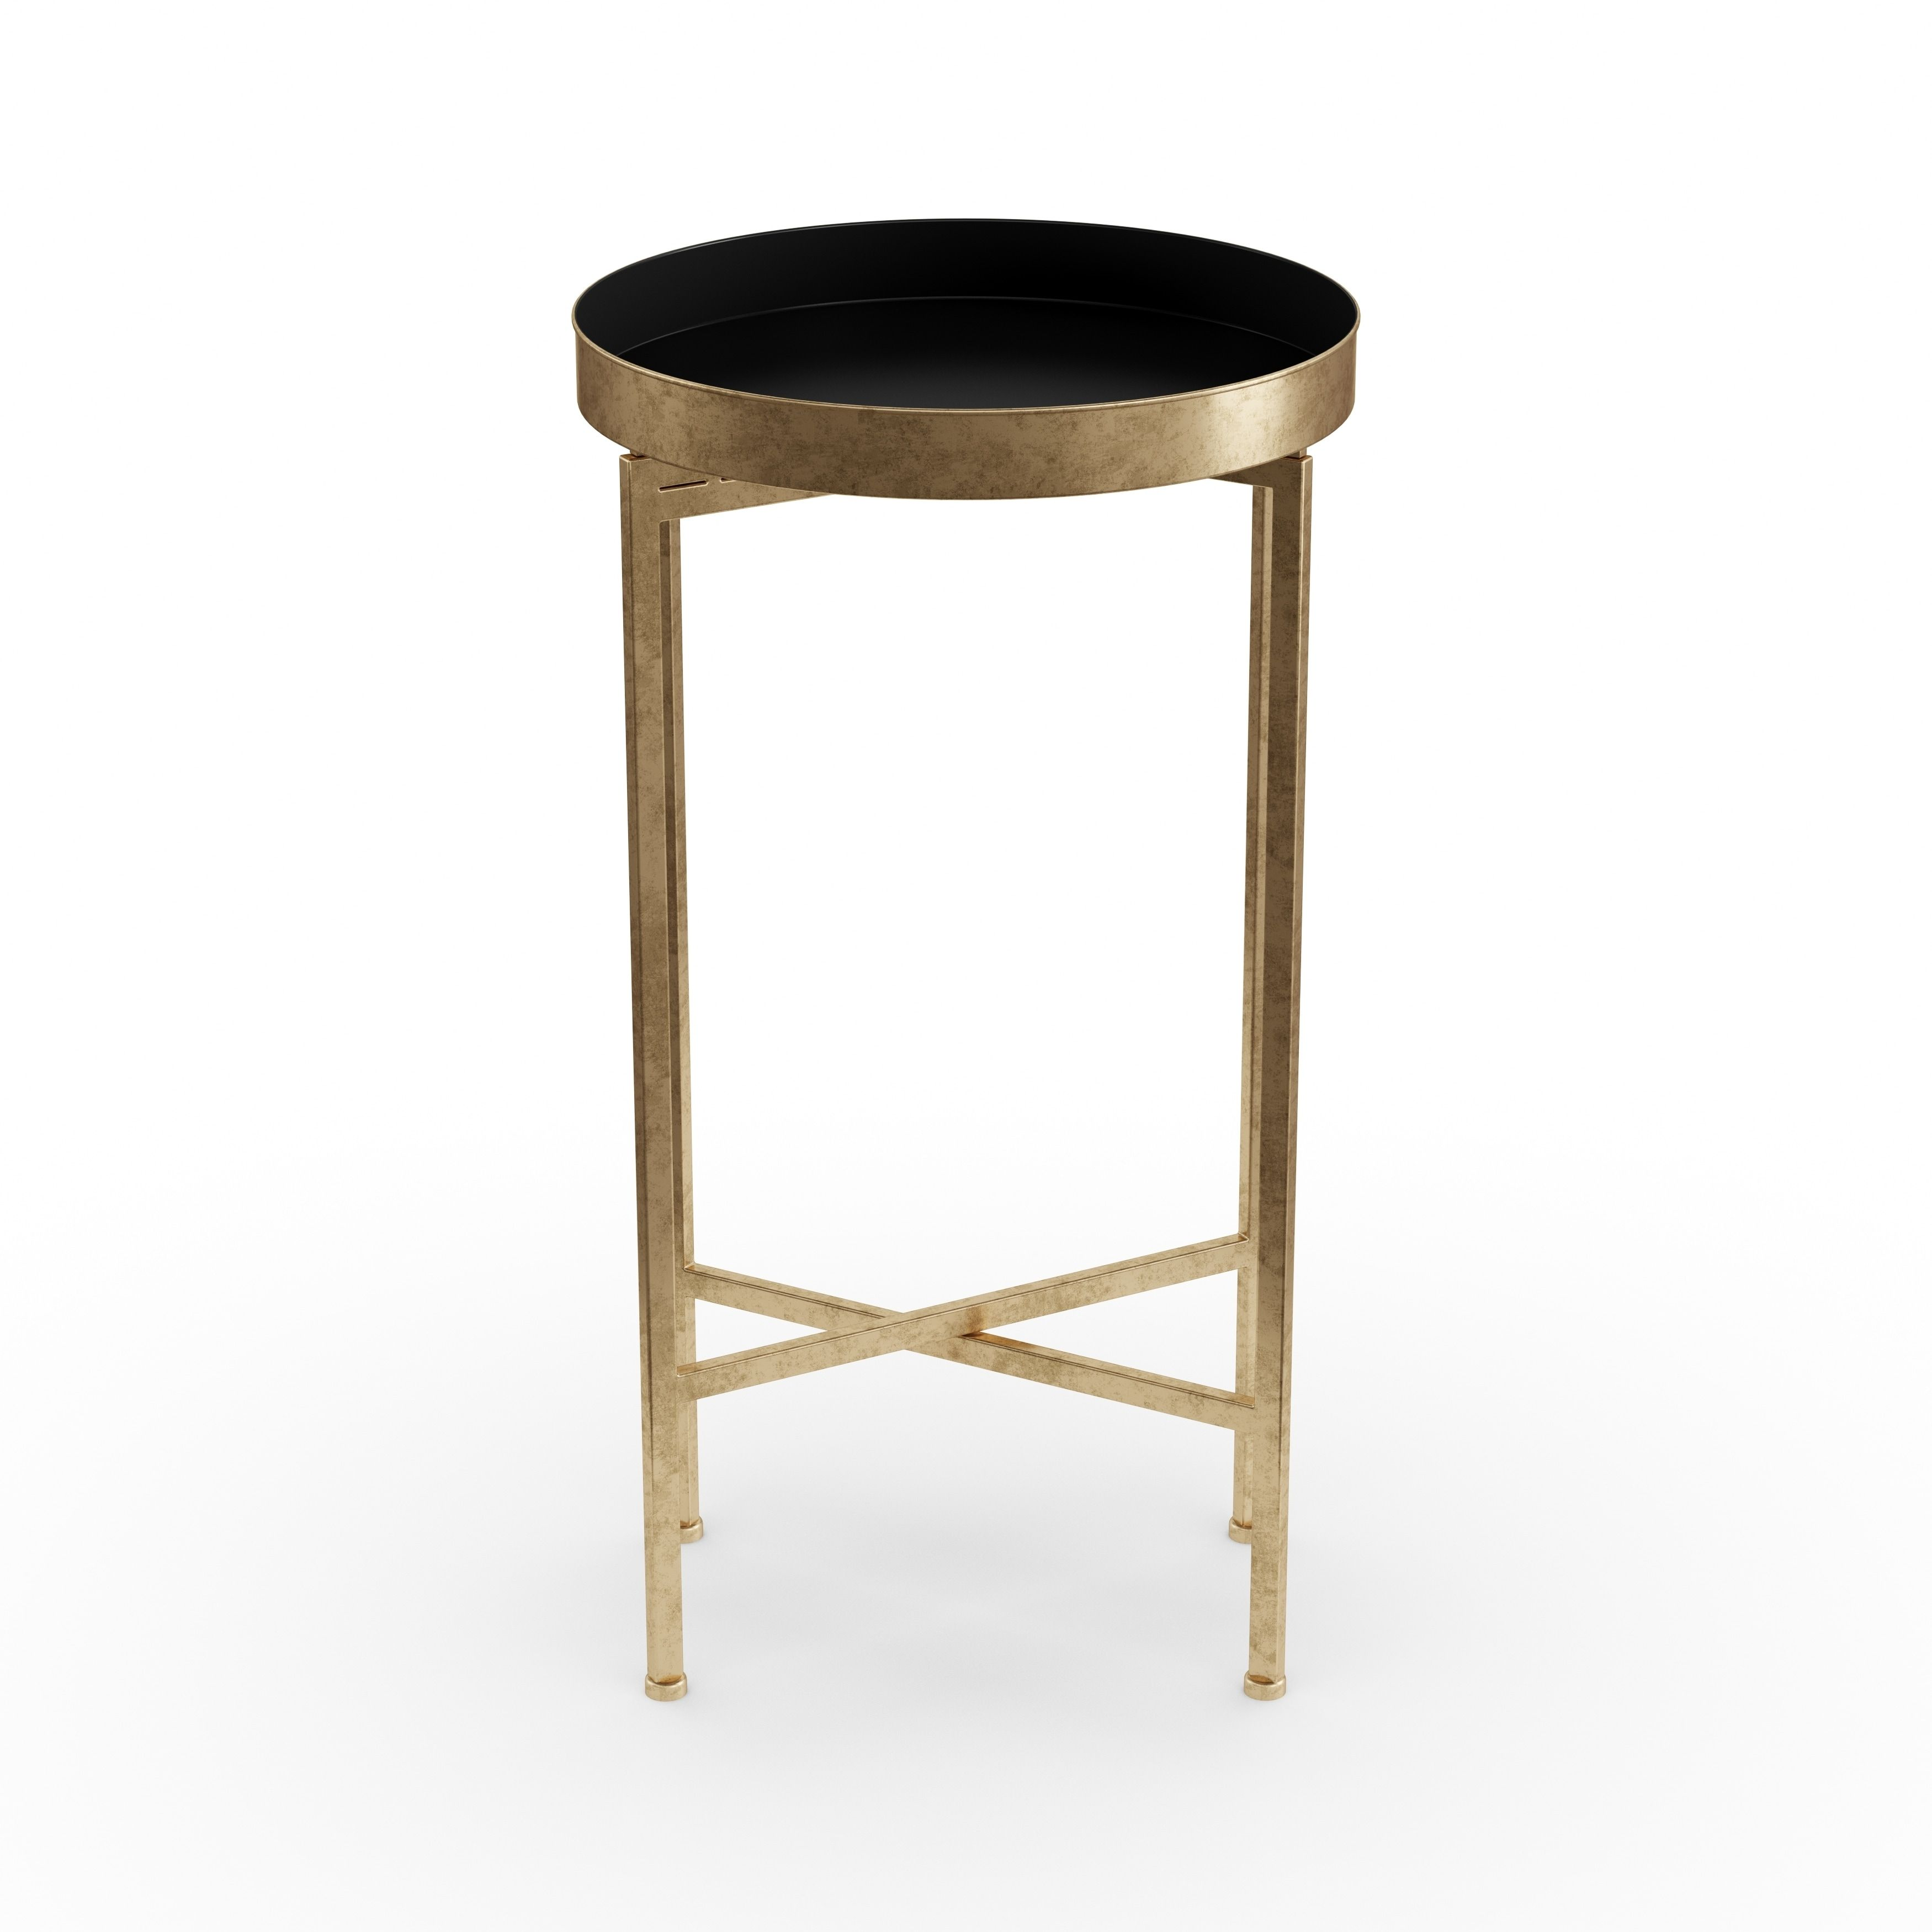 porch den alamo heights zambrano round metal foldable tray accent table black bedside with drawer target white lamp wooden barn sliding door hardware outdoor shelf end attached